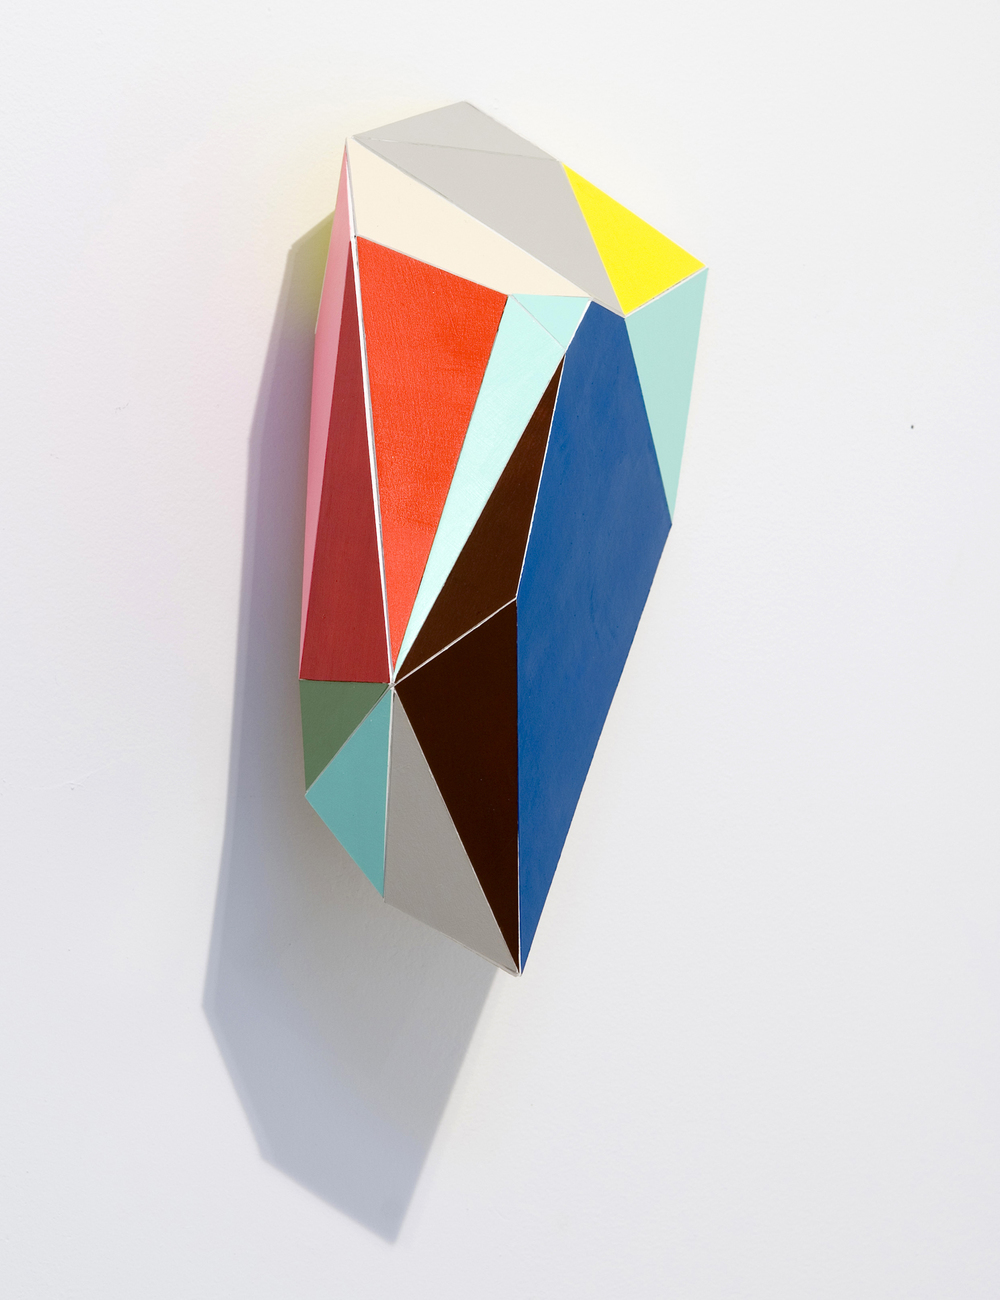 Magnetic Adaptable #5 2007  Acrylic on board, magnets